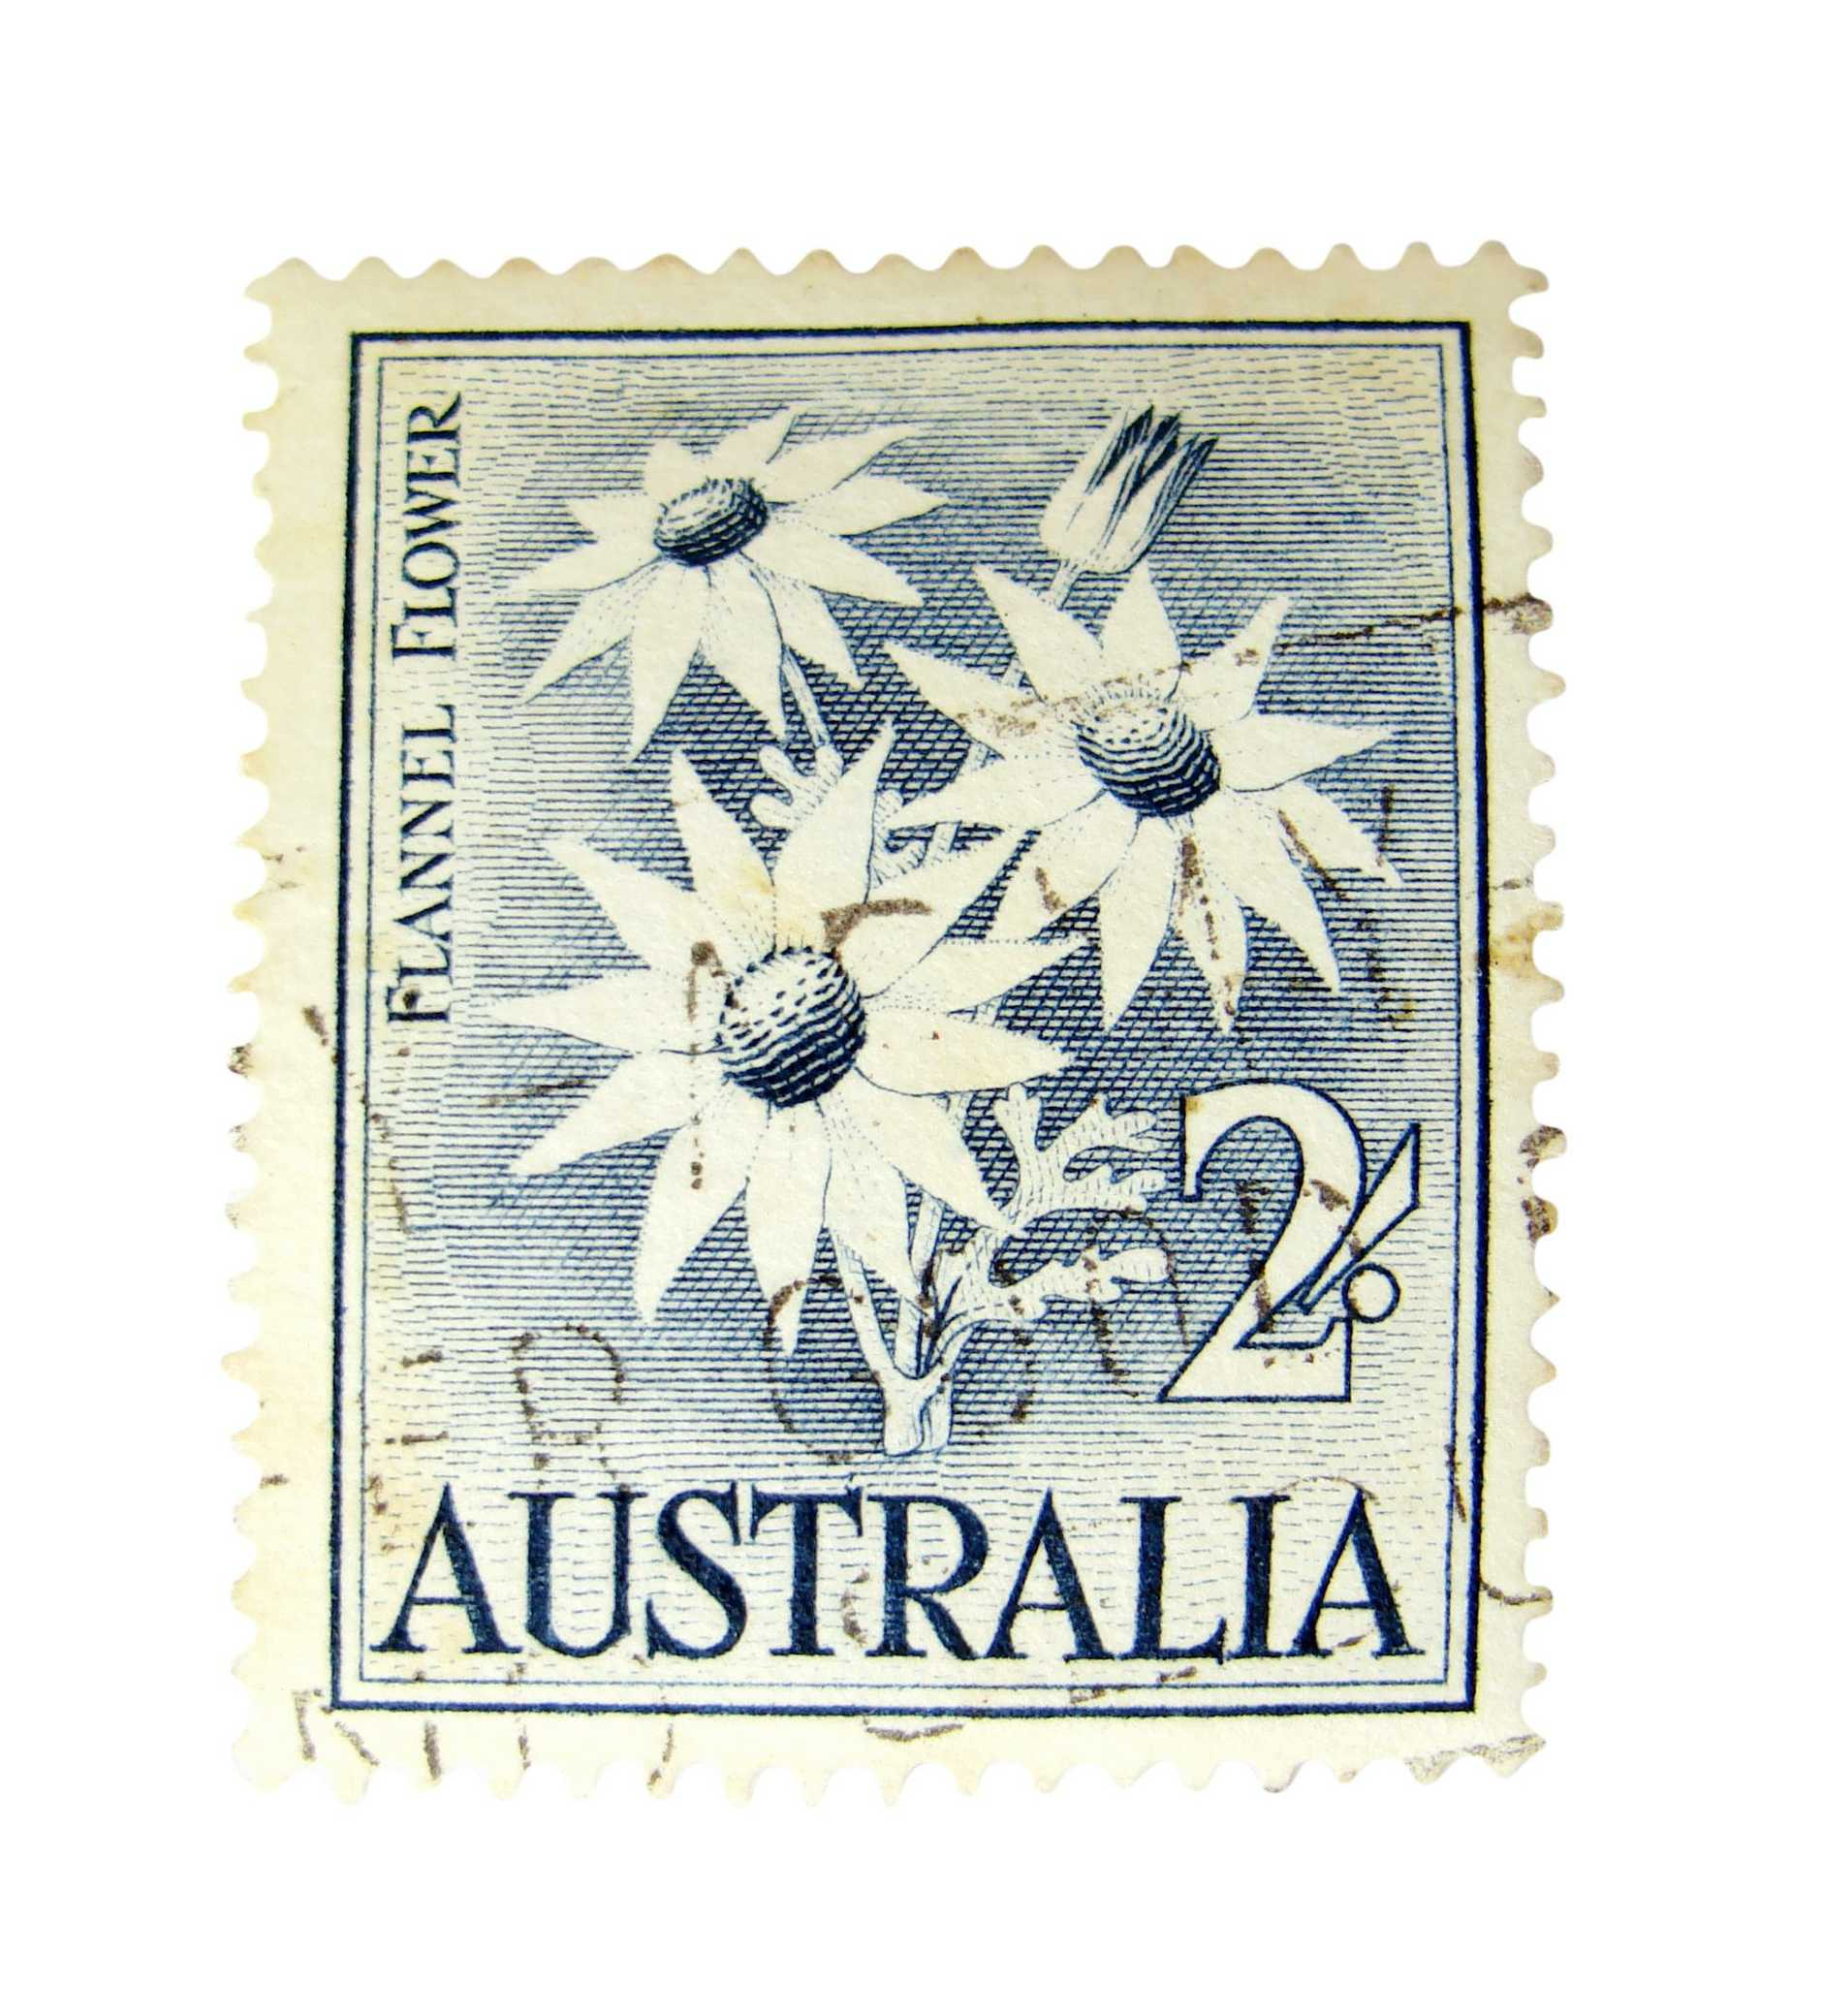 Australia postage stamp with flannel flowers on white background